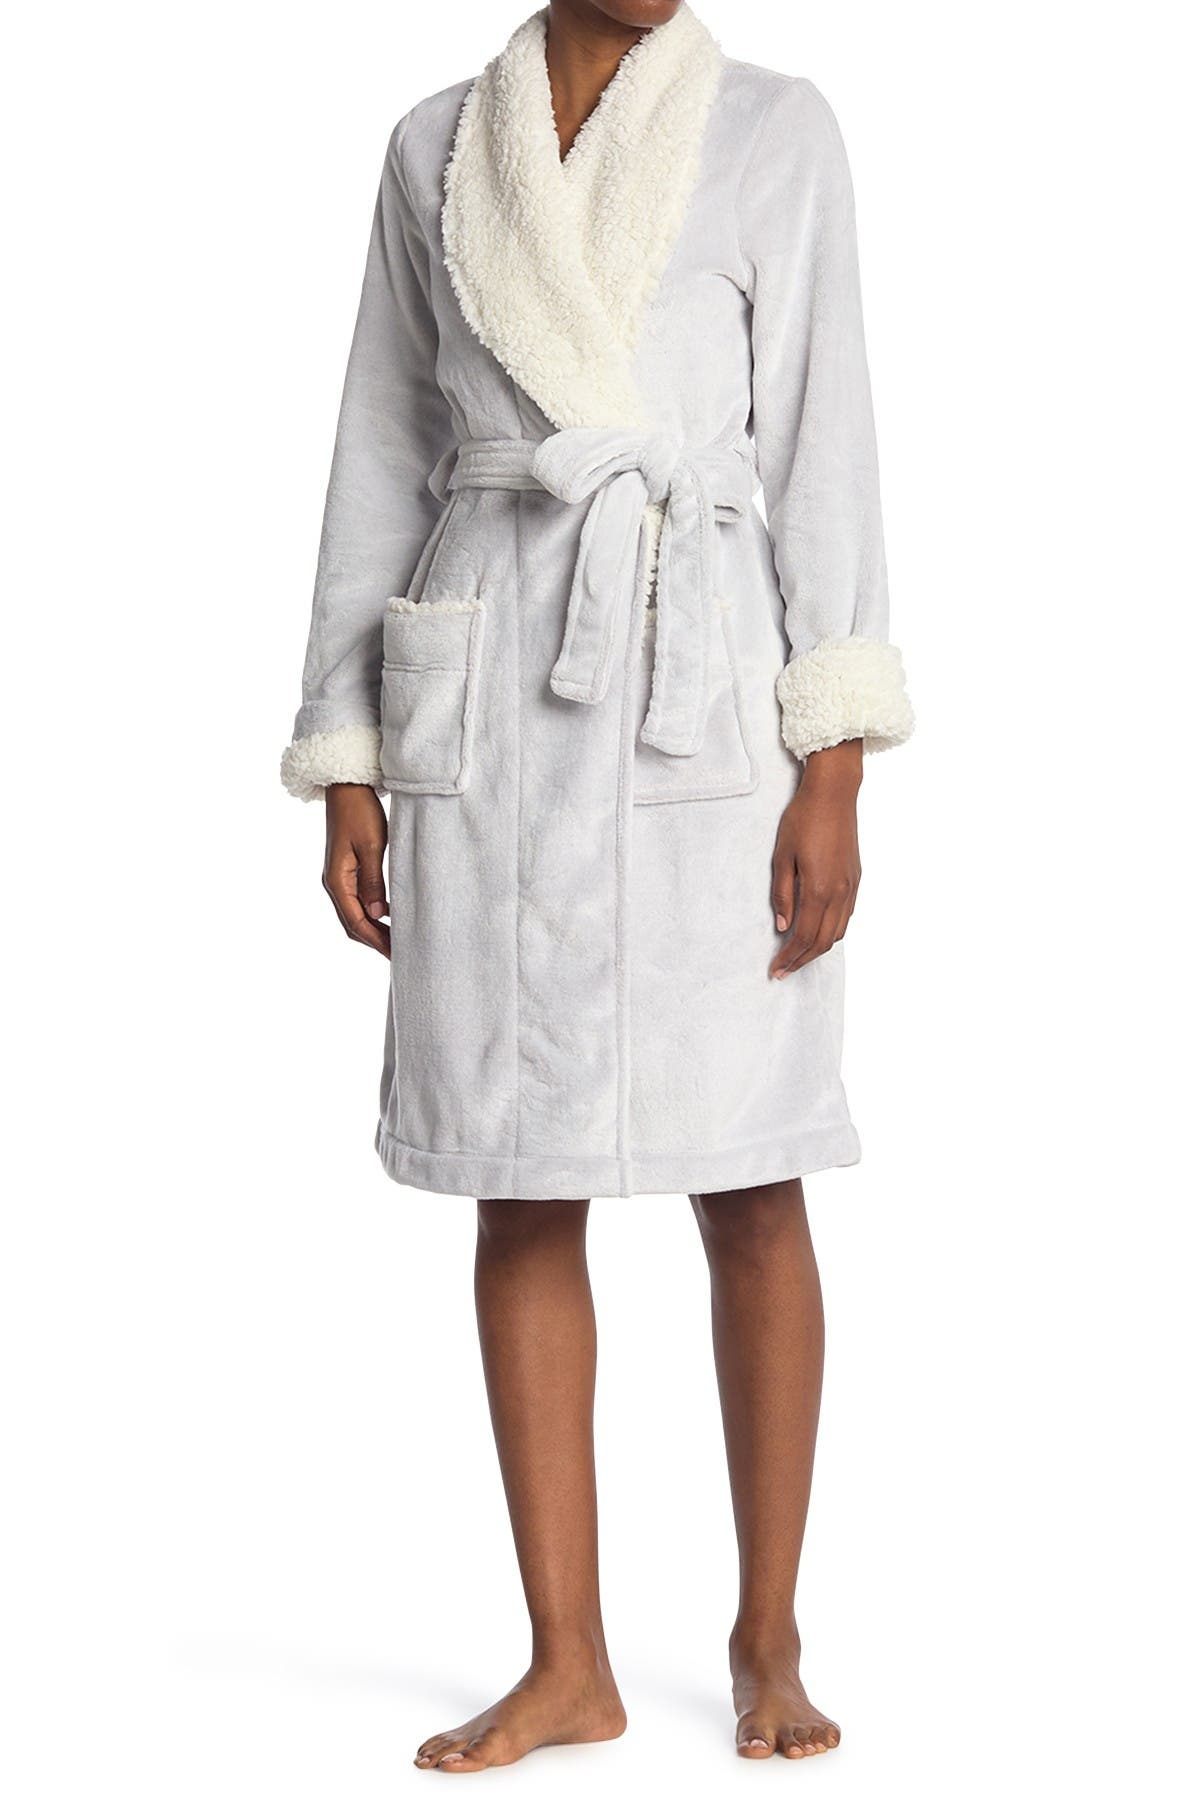 Image of shimera Faux Fur Lined Mid Length Robe